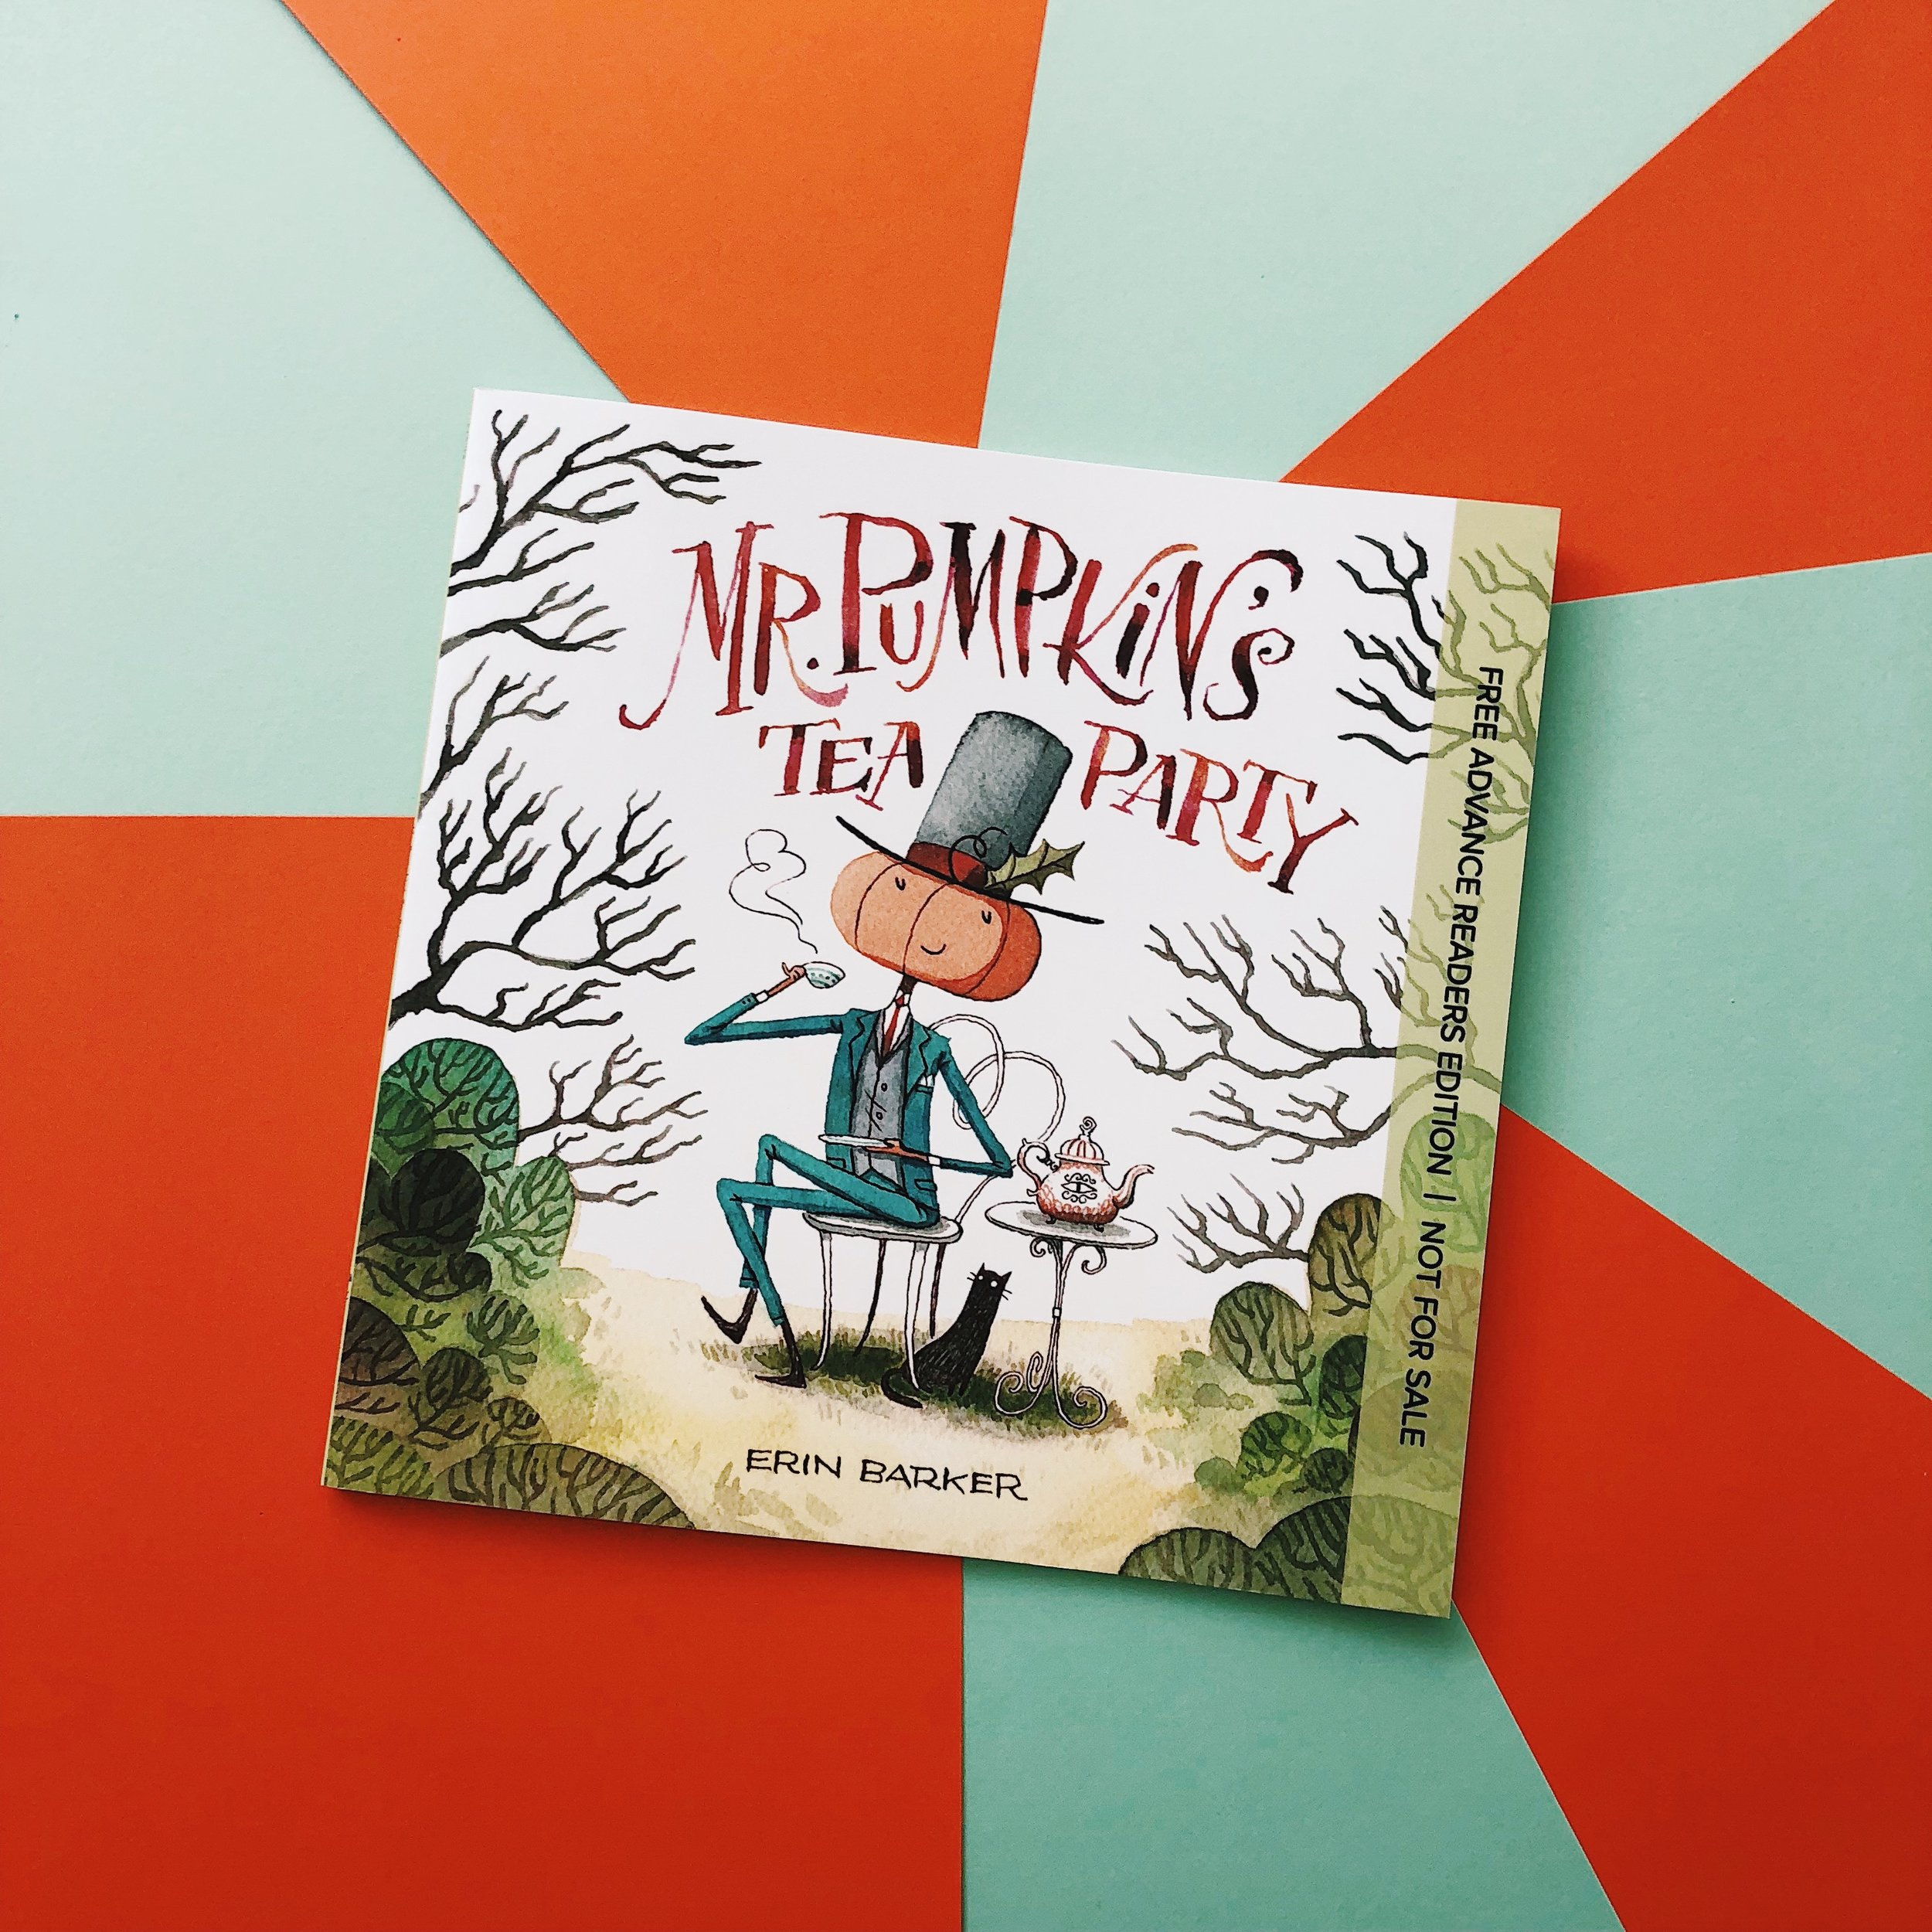 Mr. Pumpkin's Tea Party     is available this September—pre-order it on National Book Lovers Day and get excited for a new book to read!